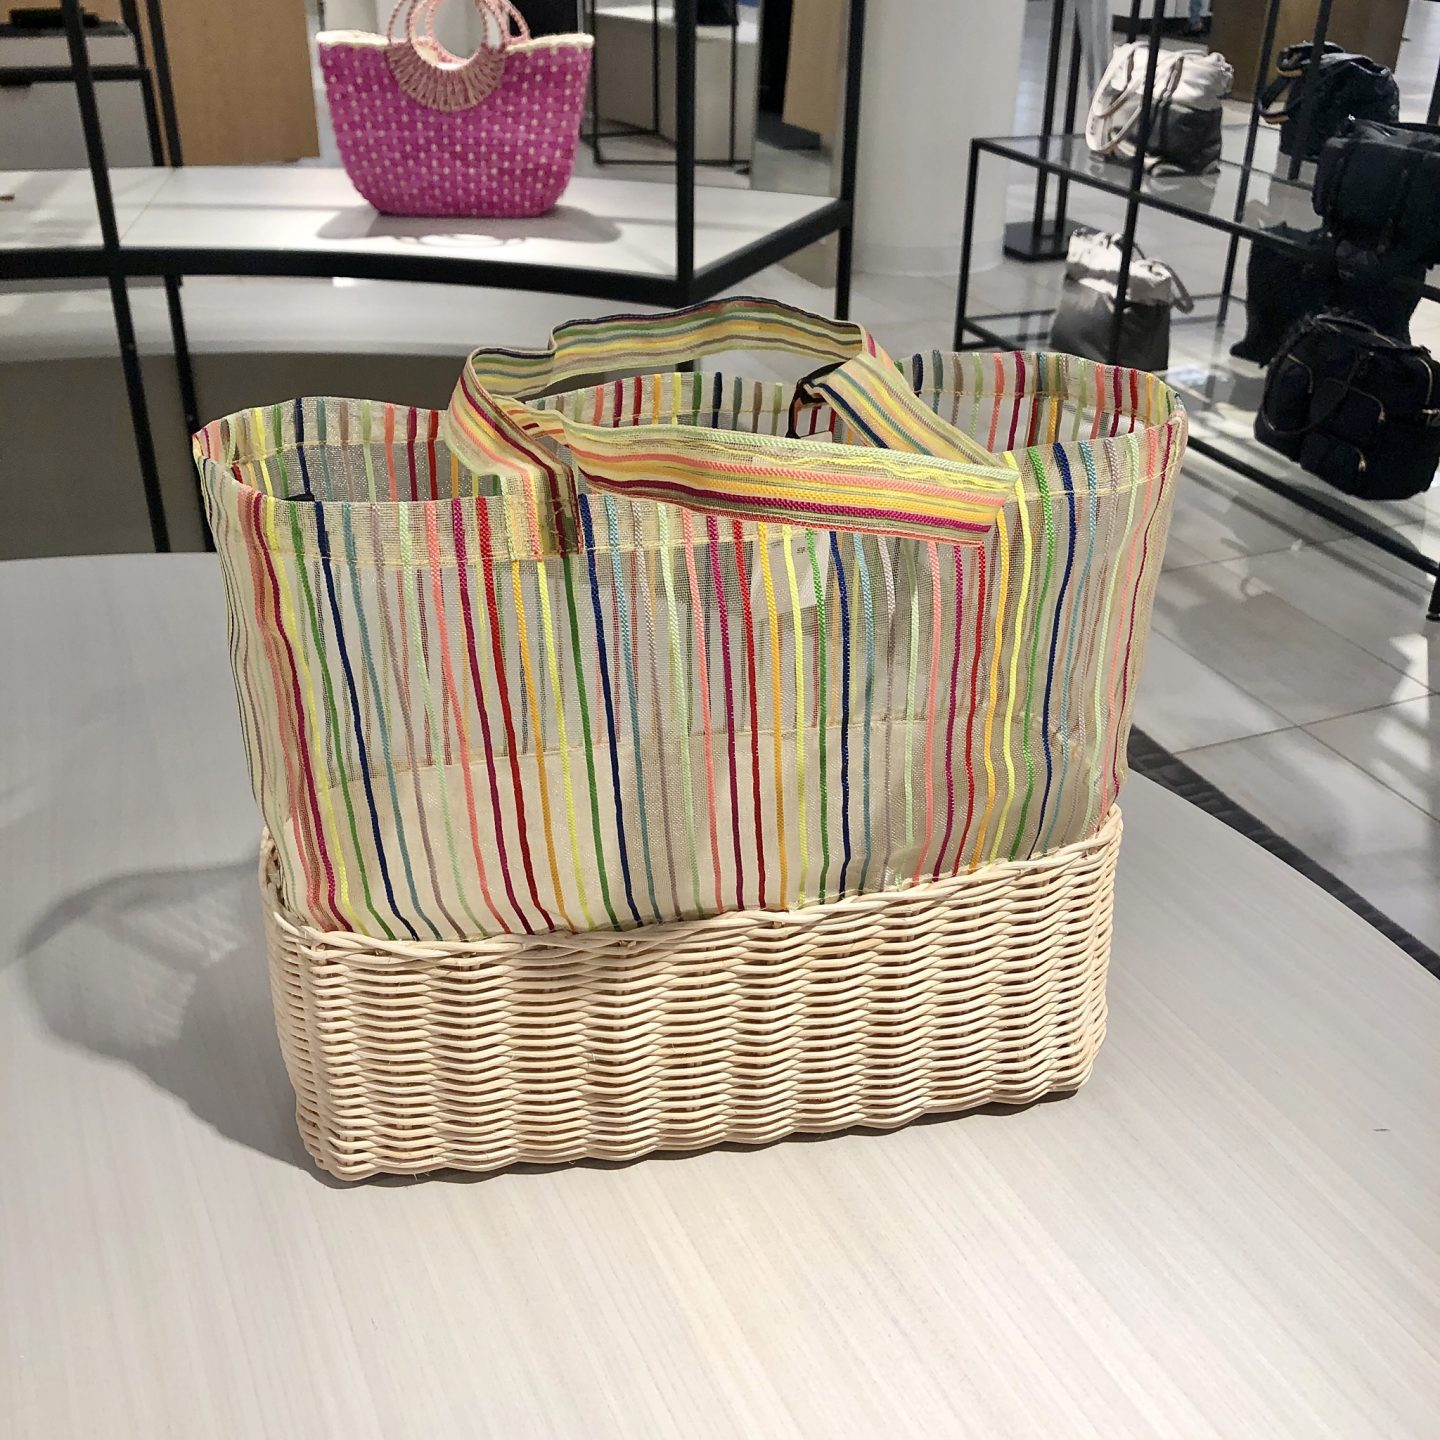 Halogen x Atlantic-Pacific Wicker & Mesh Tote